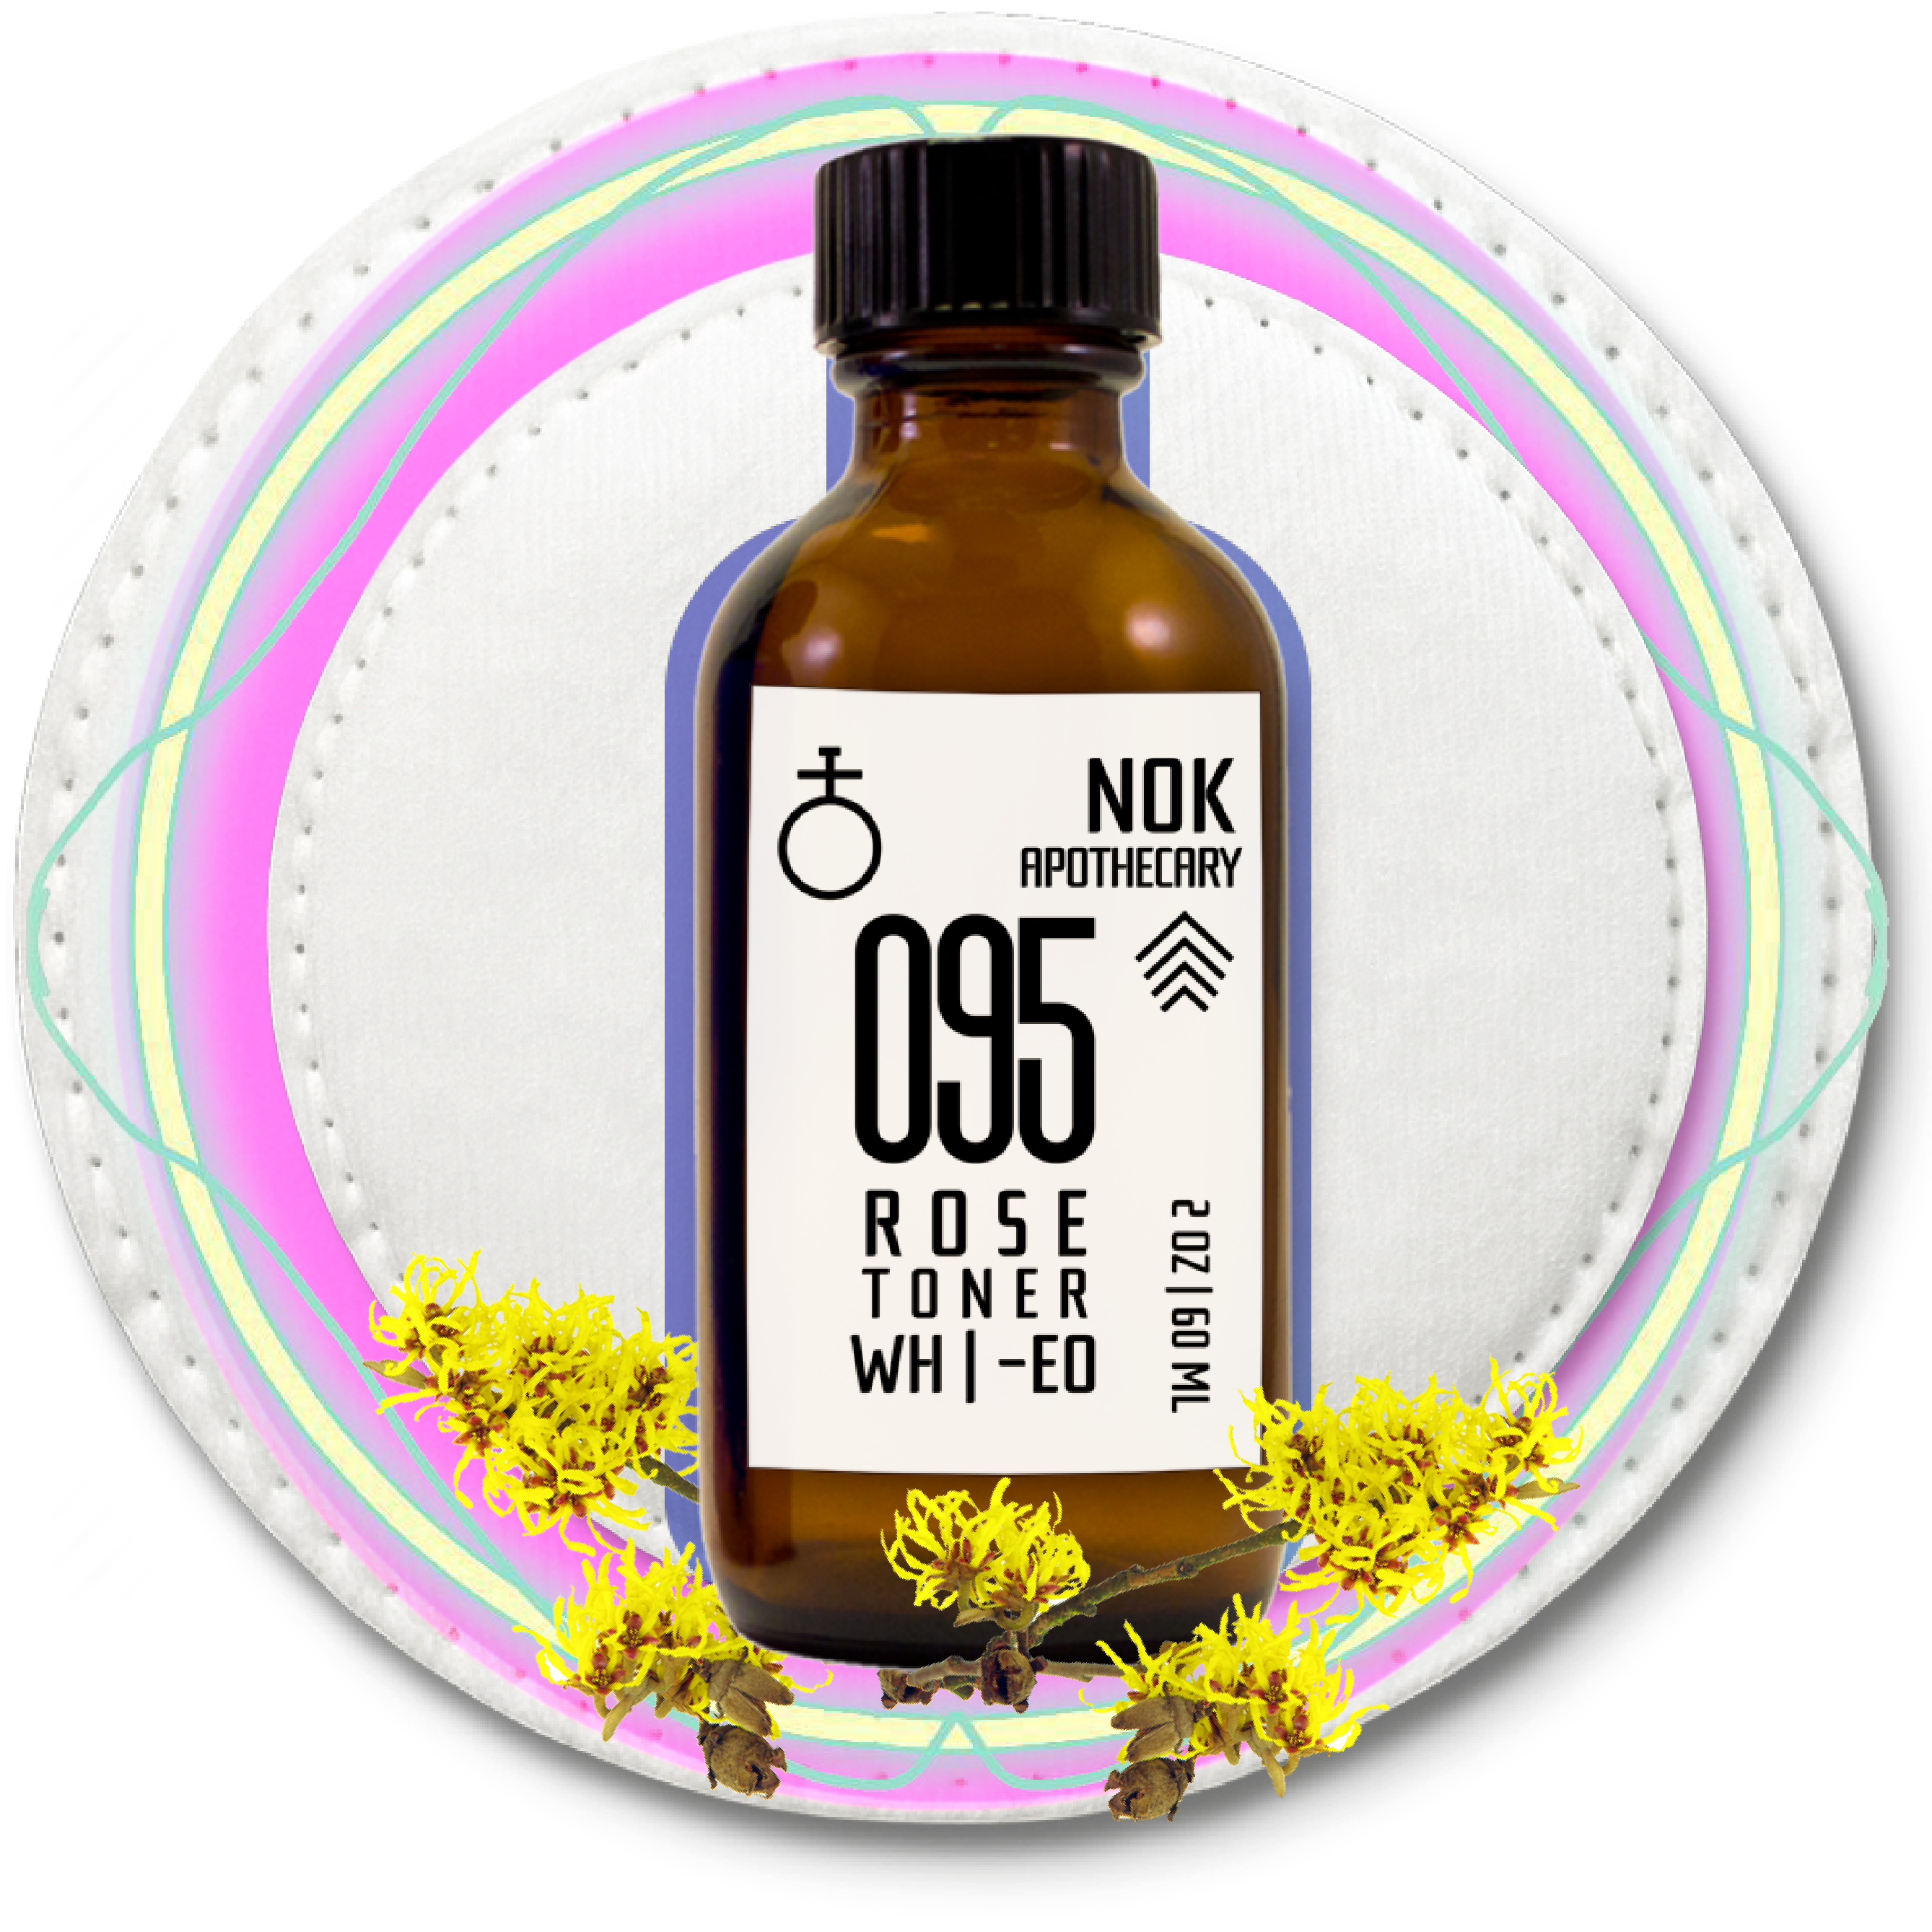 095 Witch Hazel Toner | Sensitive Skin - The Nok Apothecary